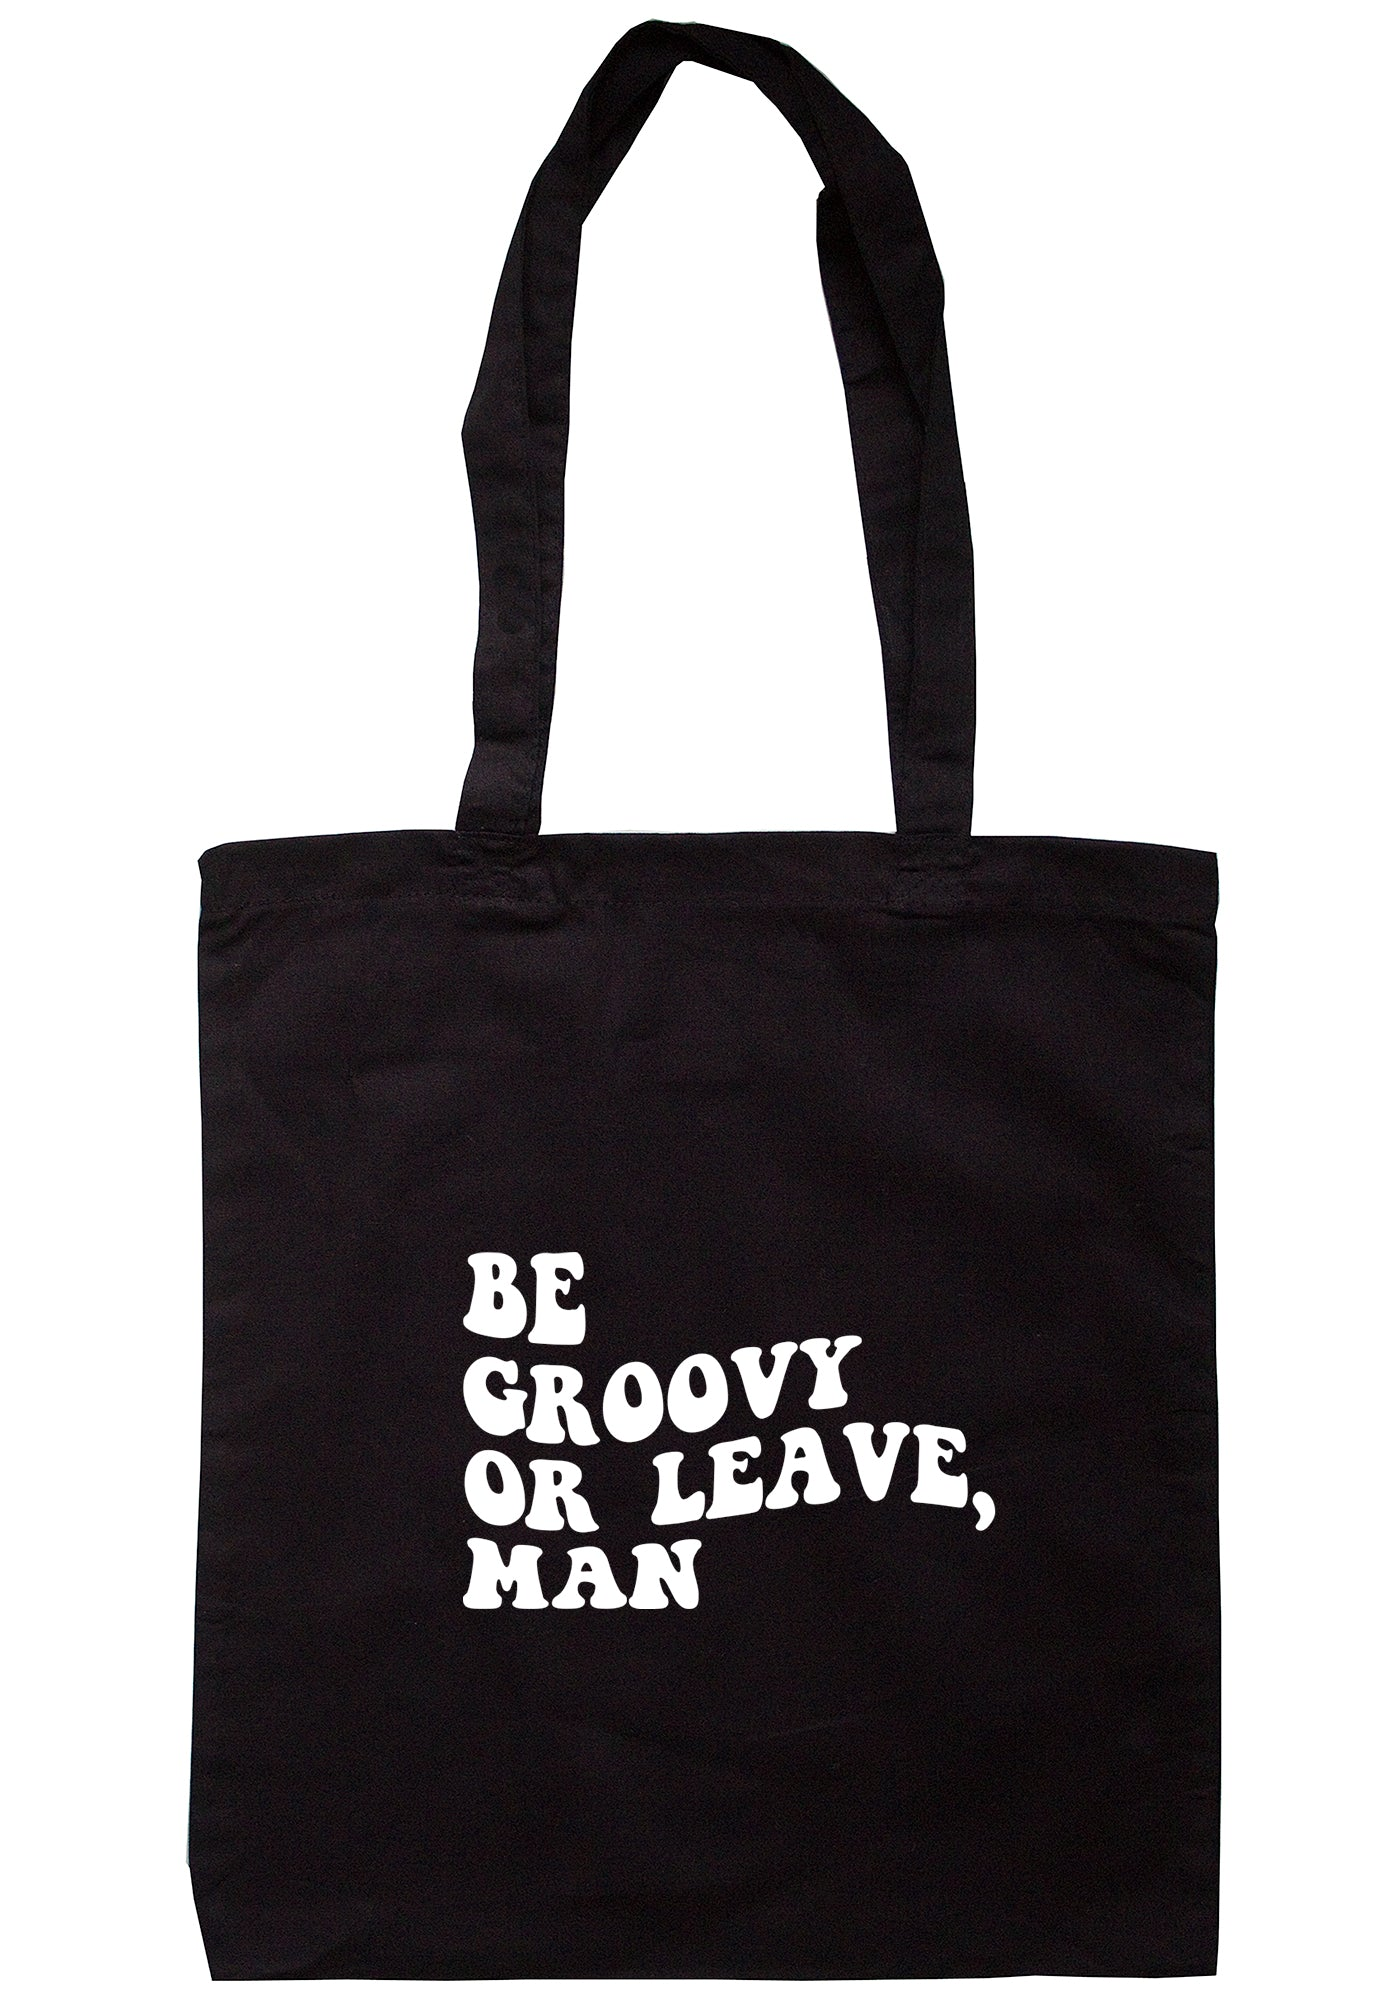 Be Groovy Or Leave, Man Tote Bag S1200 - Illustrated Identity Ltd.